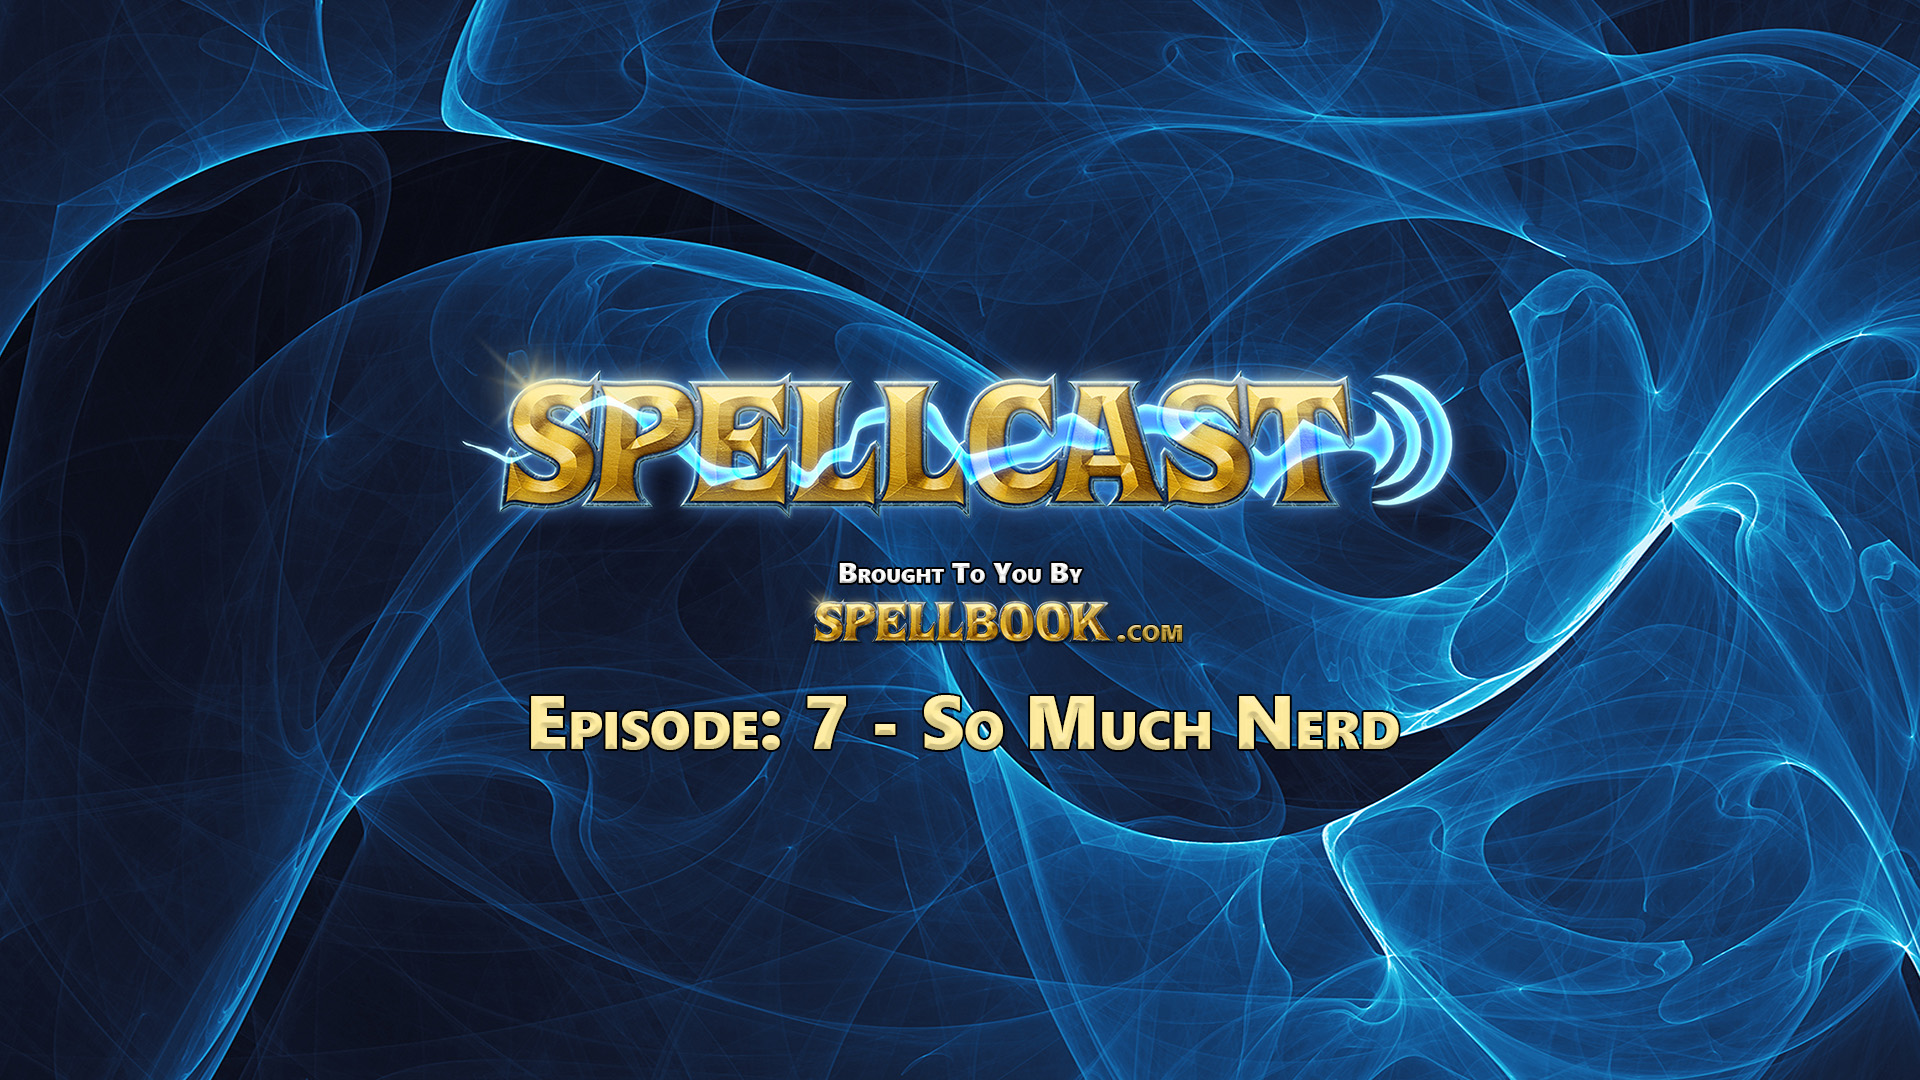 Spellcast Episode: 7 - So Much Nerd